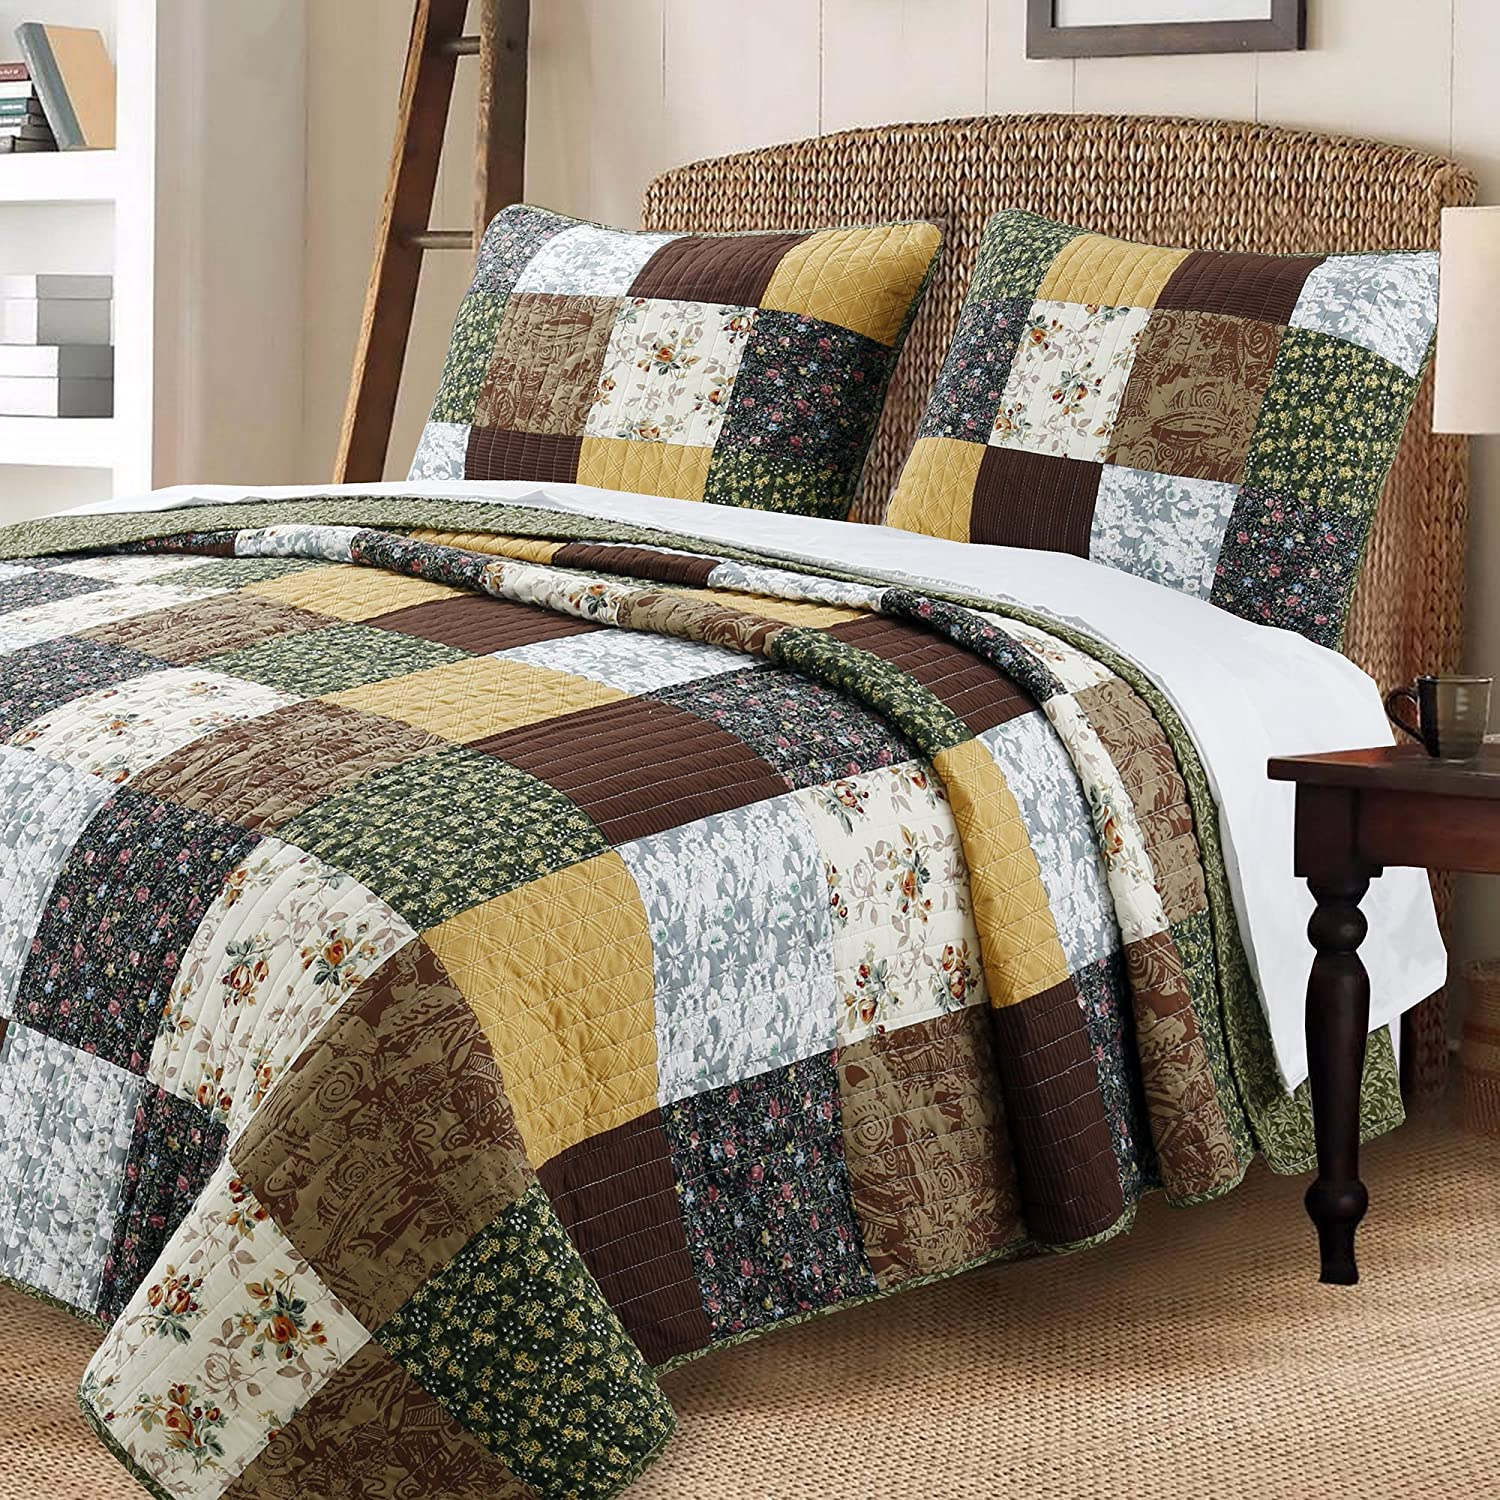 Cozy Line Home Fashions Andy Brown Olive Mustard Yellow Black Real Patchwork Quilt Bedding Set, 100% Cotton Reversible Coverlet, Bedspread Set for Men Women